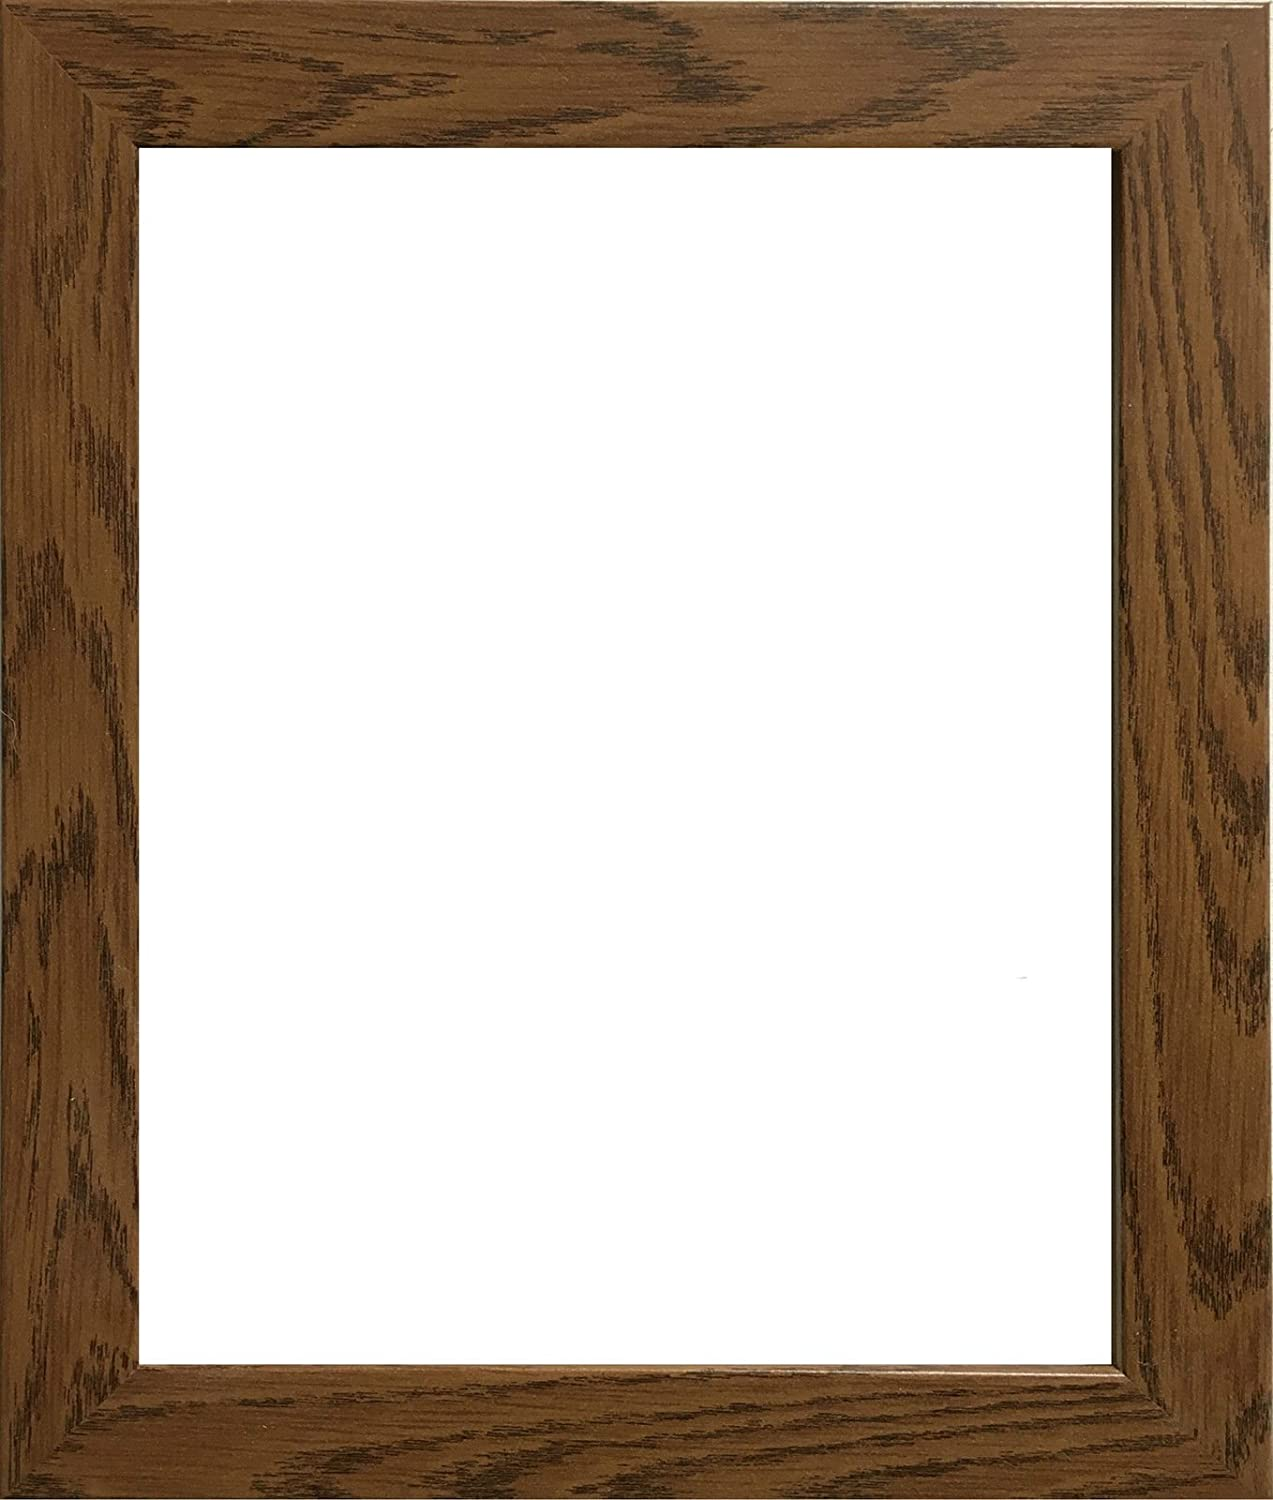 Convenient2you Dark Oak Wood Effect Photo Frame A1 840x594mm Picture Frames For Wall Mount Freestanding Photo Frame Picture Frame Wood Wooden Effect Amazon Co Uk Kitchen Home